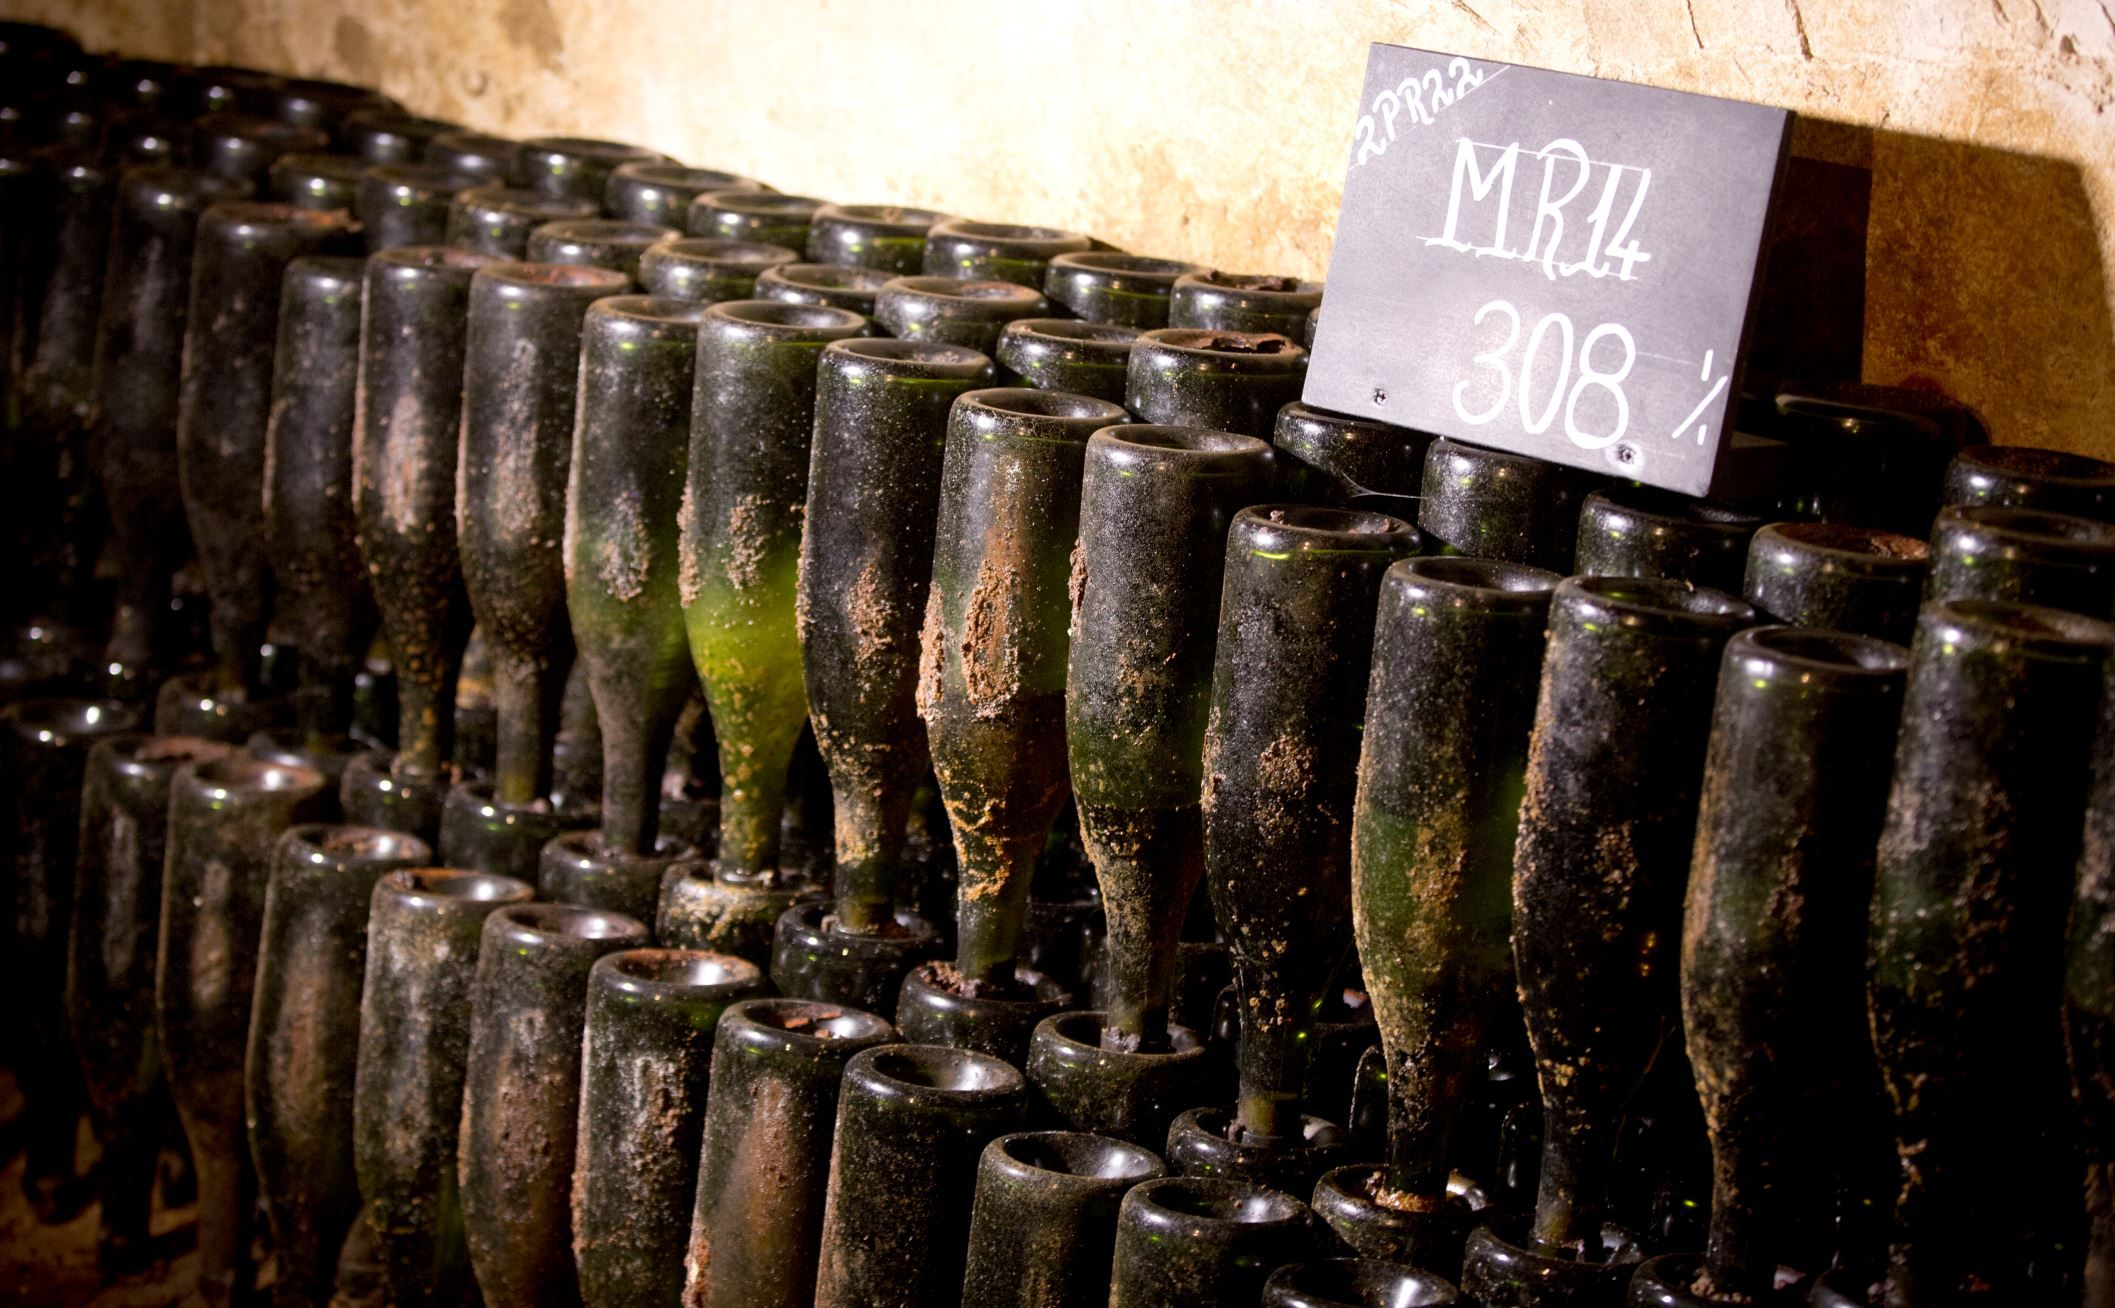 Bottles of 1914 Pol Roger champagne are stacked neck down in the cellars of the Pol Roger Champagne ... - AP Photo/Virginia Mayo